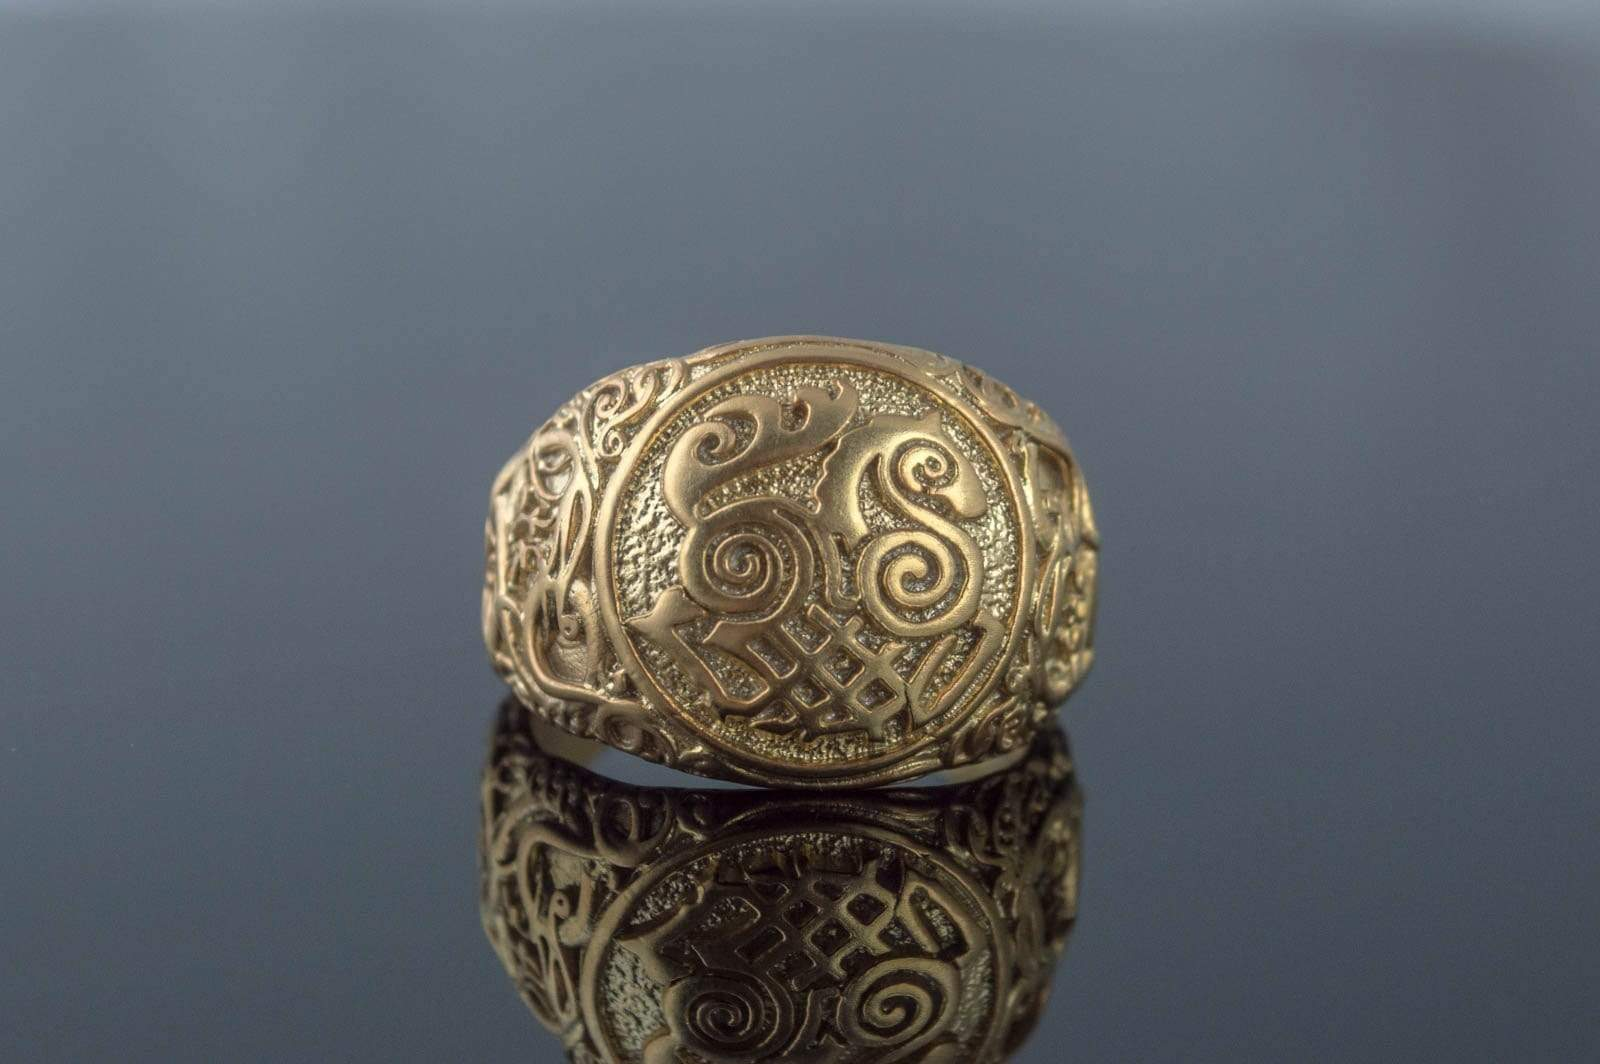 Ancient Smithy VW jewelry Sleipnir Symbol Ring with Urnes Style Gold Viking Jewelry